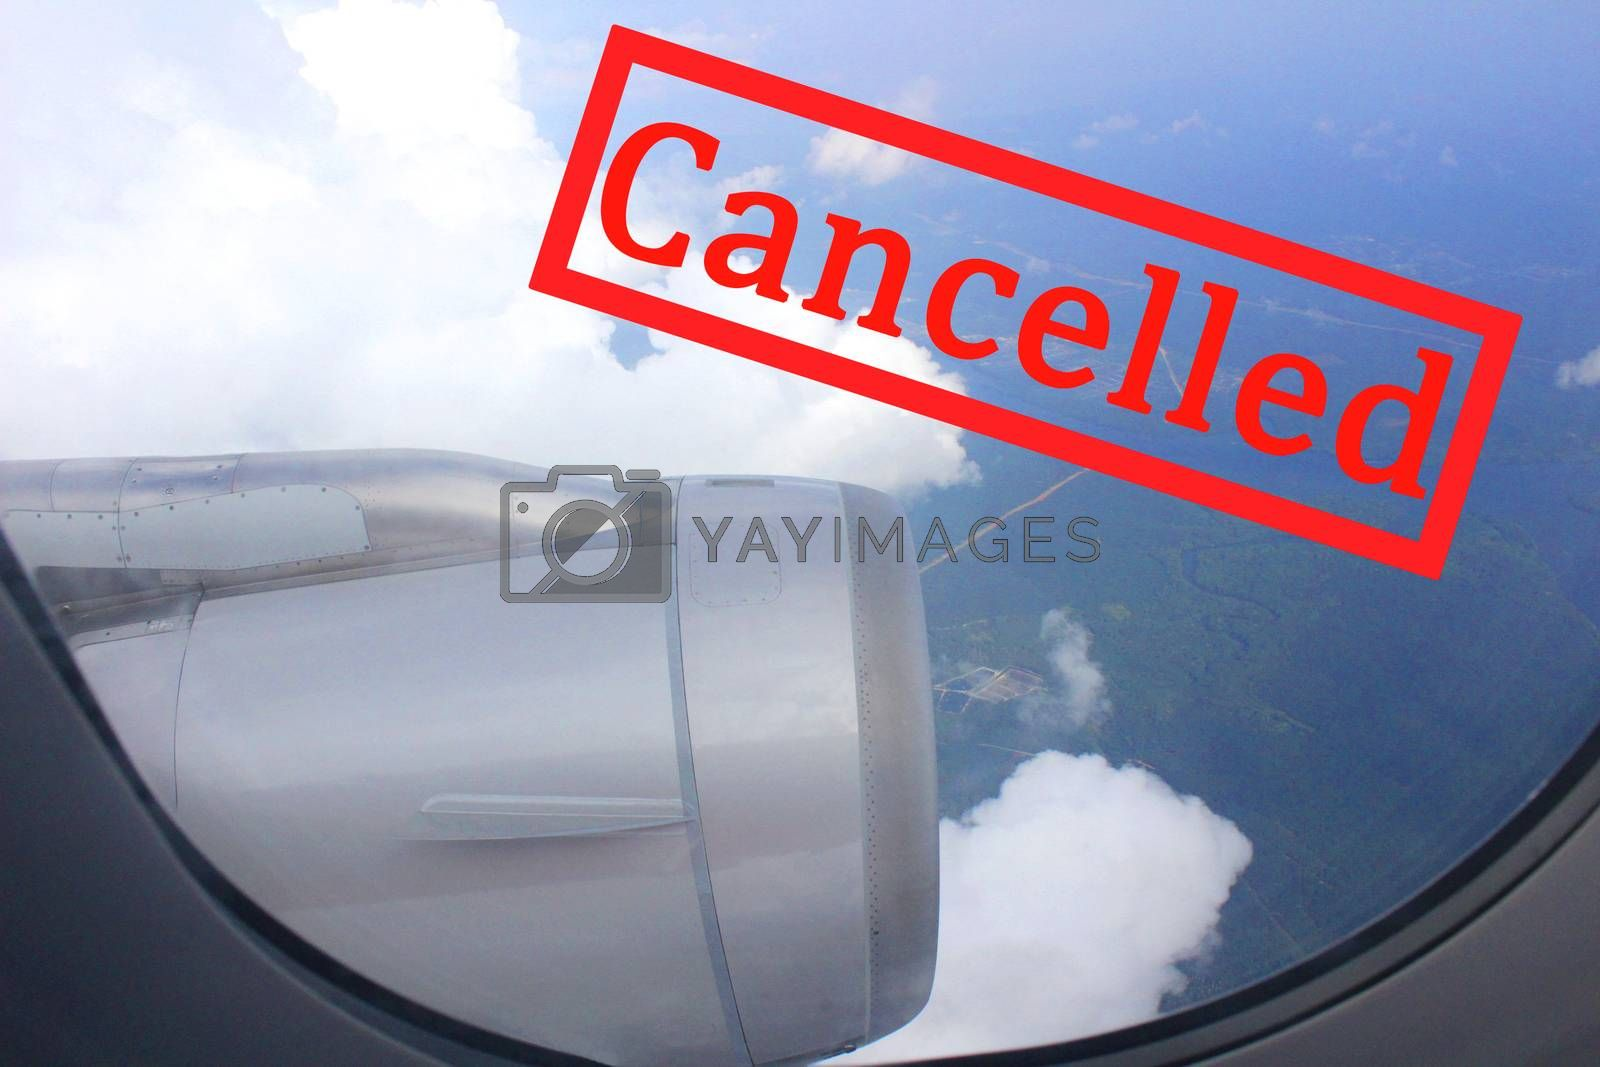 Covid 19 cancellation of all flying lines and trips due to the Covid 19 virus outbreak.Coronavirus flight cancelled concept